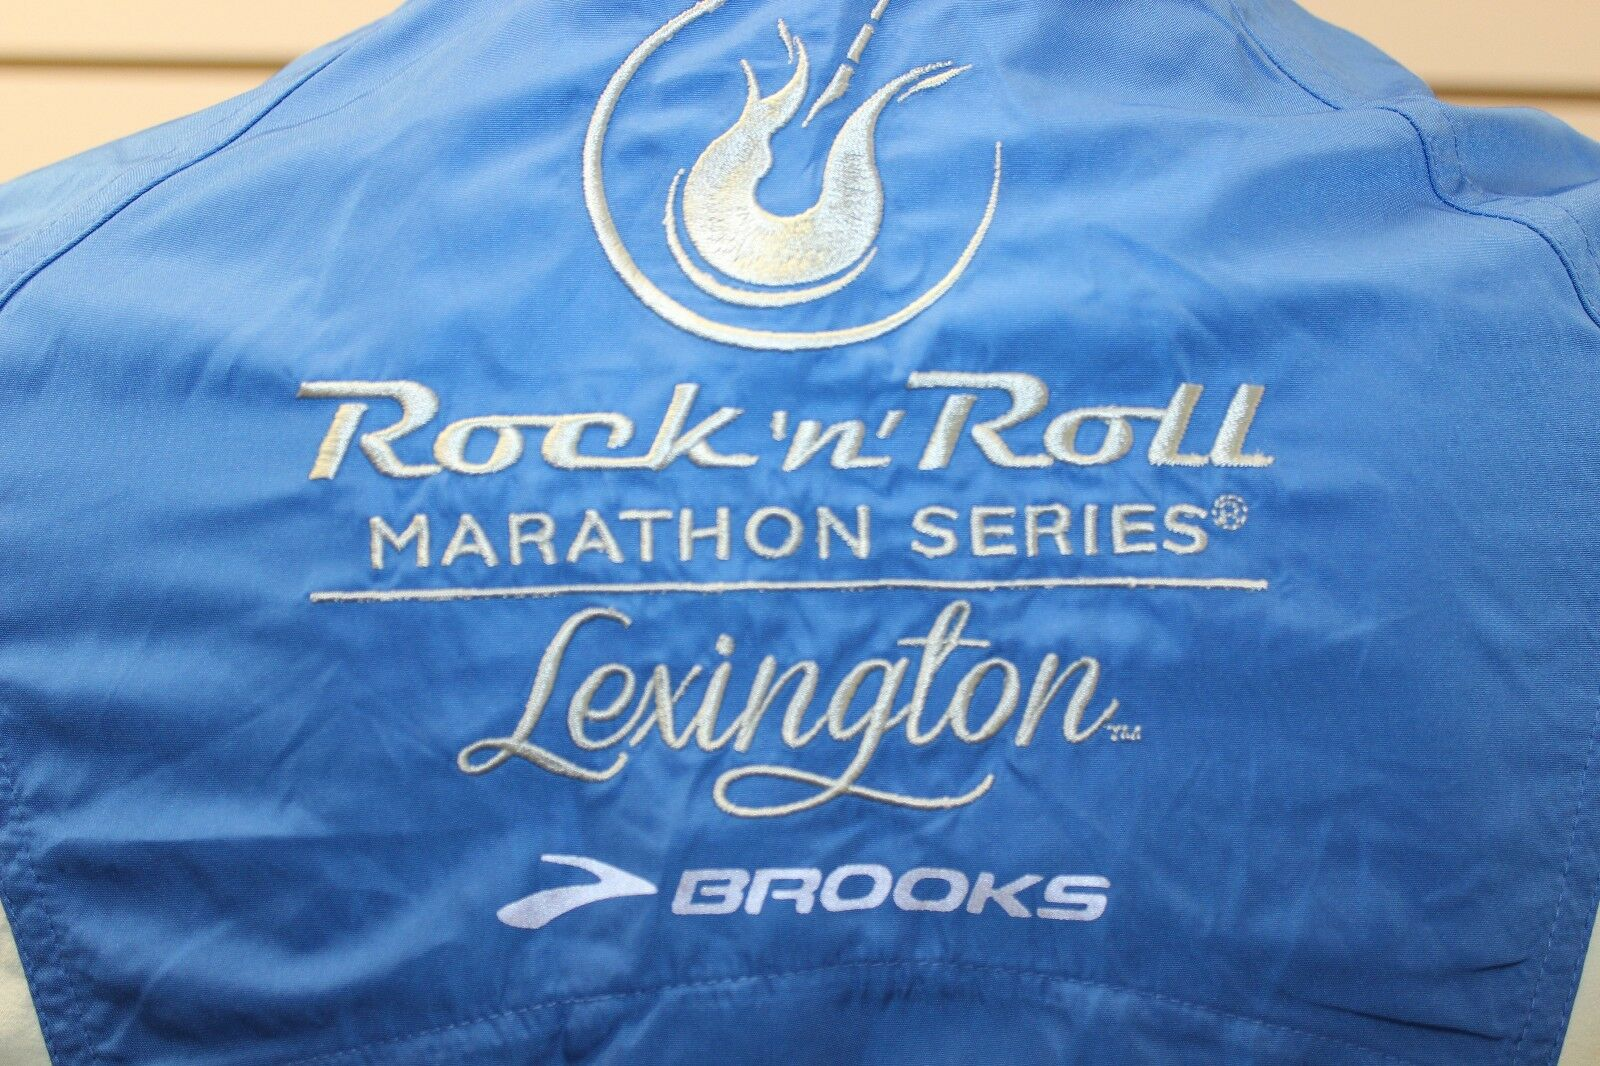 Brooks da Donna Rock And Roll Lexington Ufficiale Gara Gara Gara Giacca Neptune   29901b